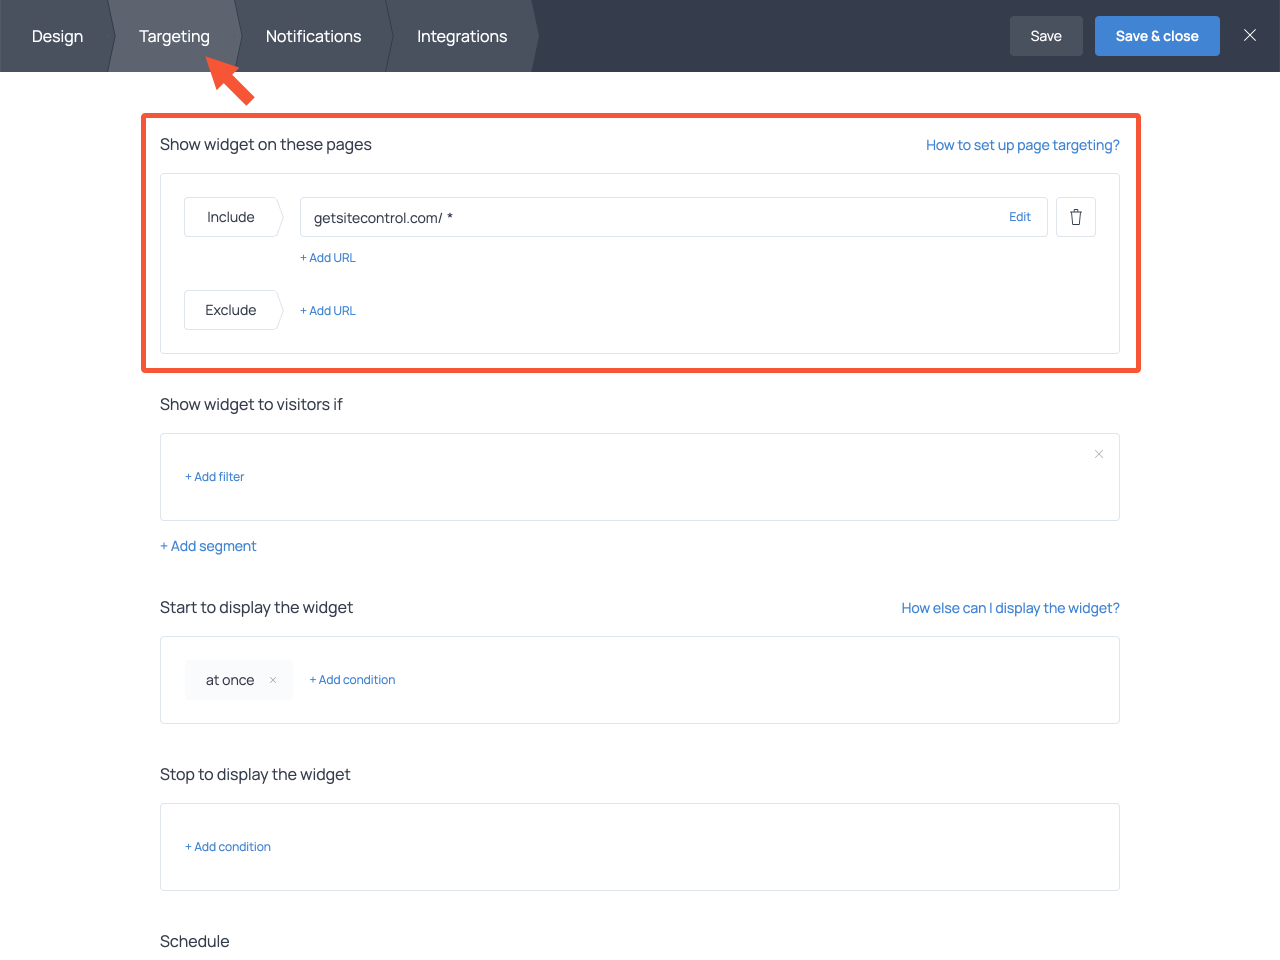 How to select pages where the complaint form should be displayed